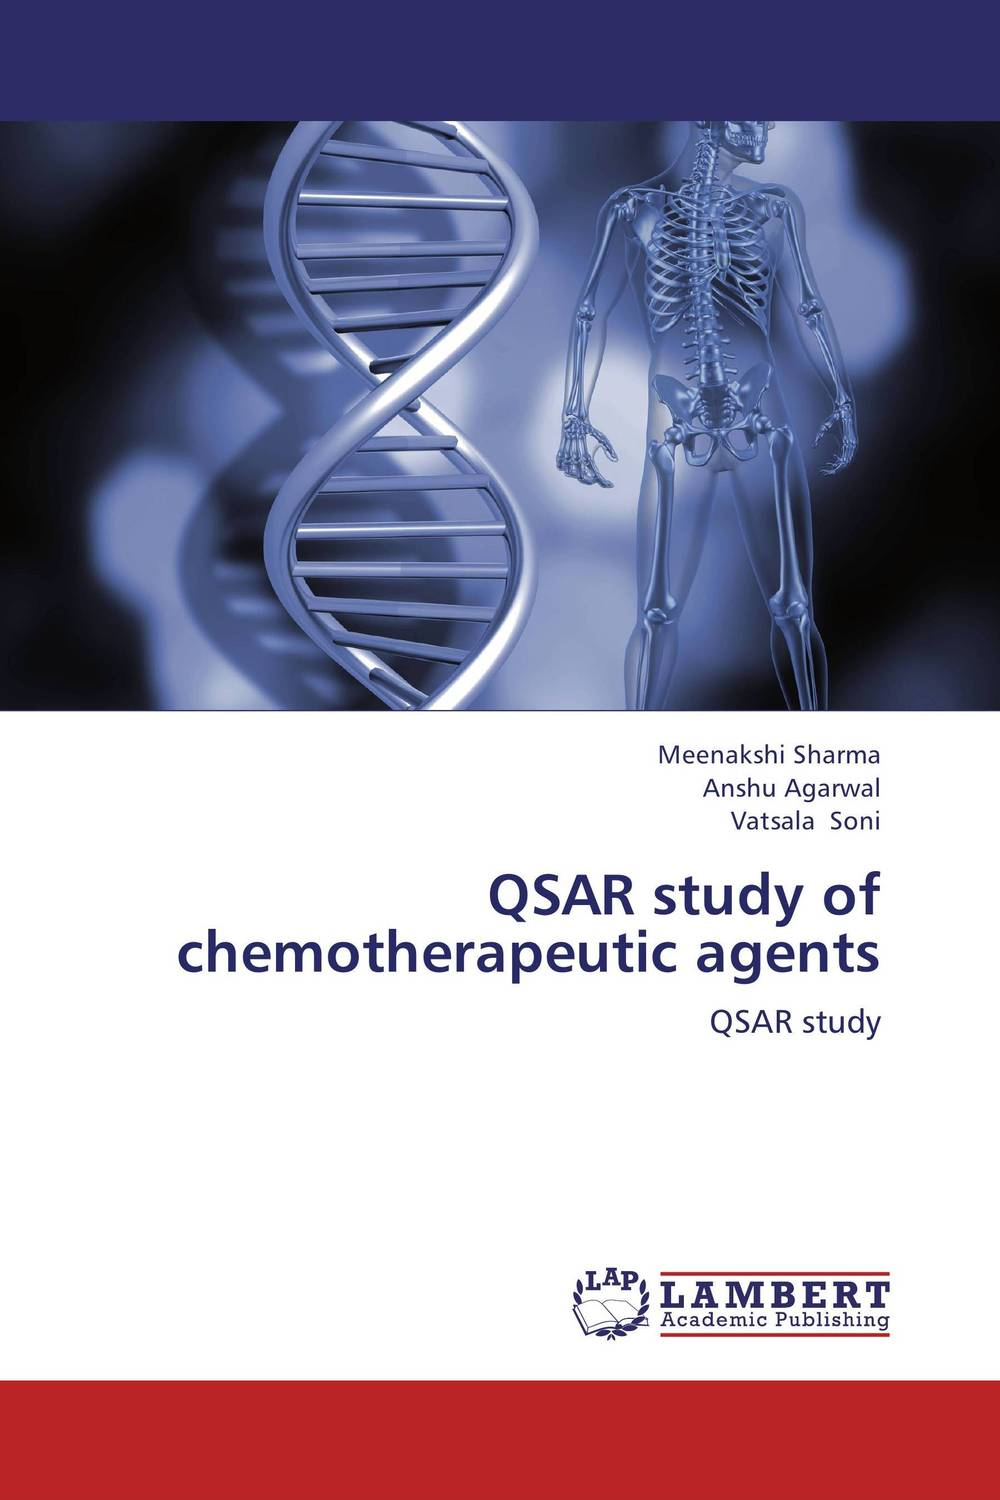 QSAR study of chemotherapeutic agents drug discovery and design